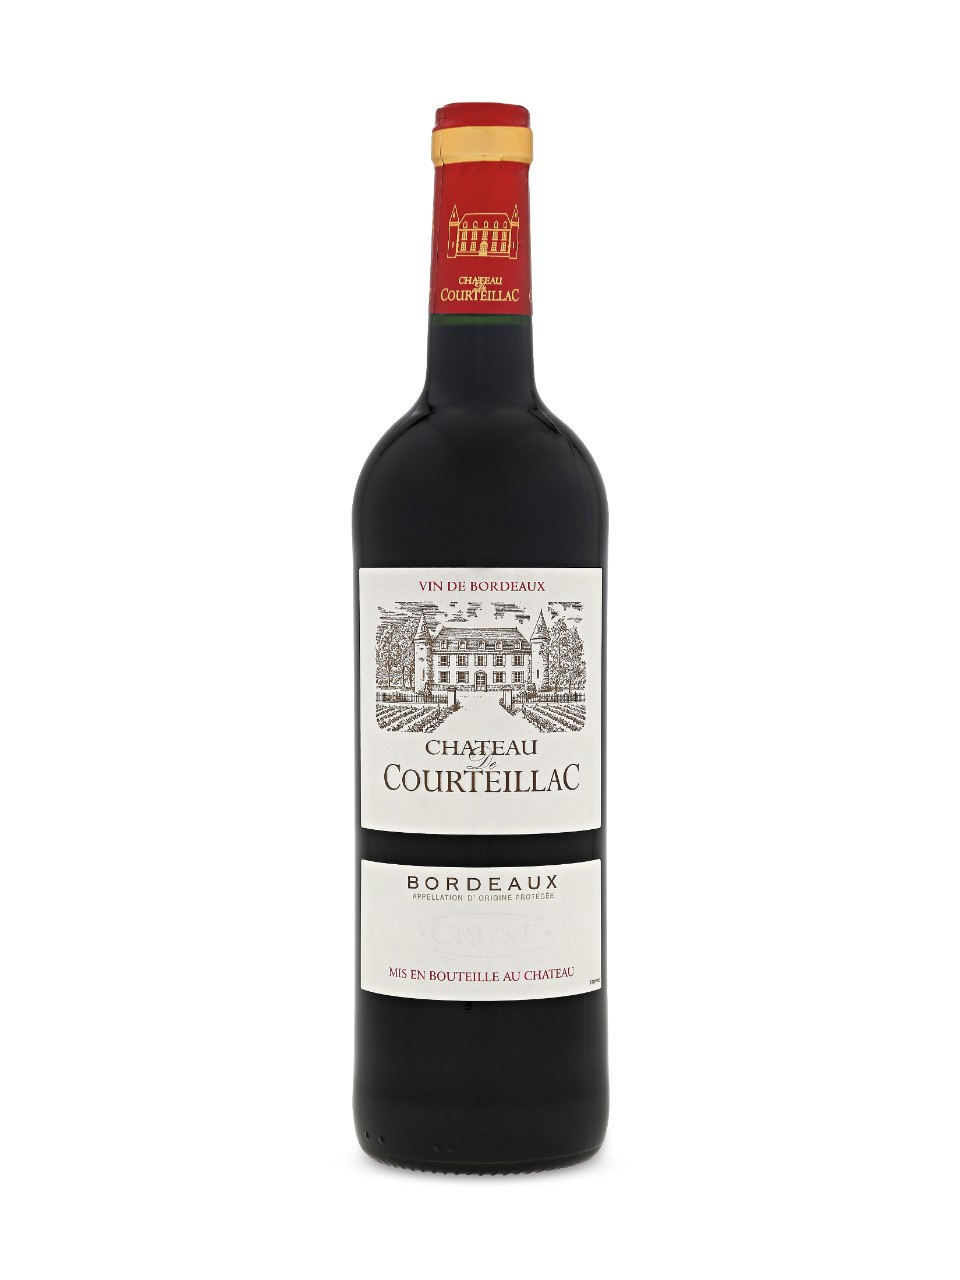 Chateau De Courteillac Bordeaux AOC from LCBO